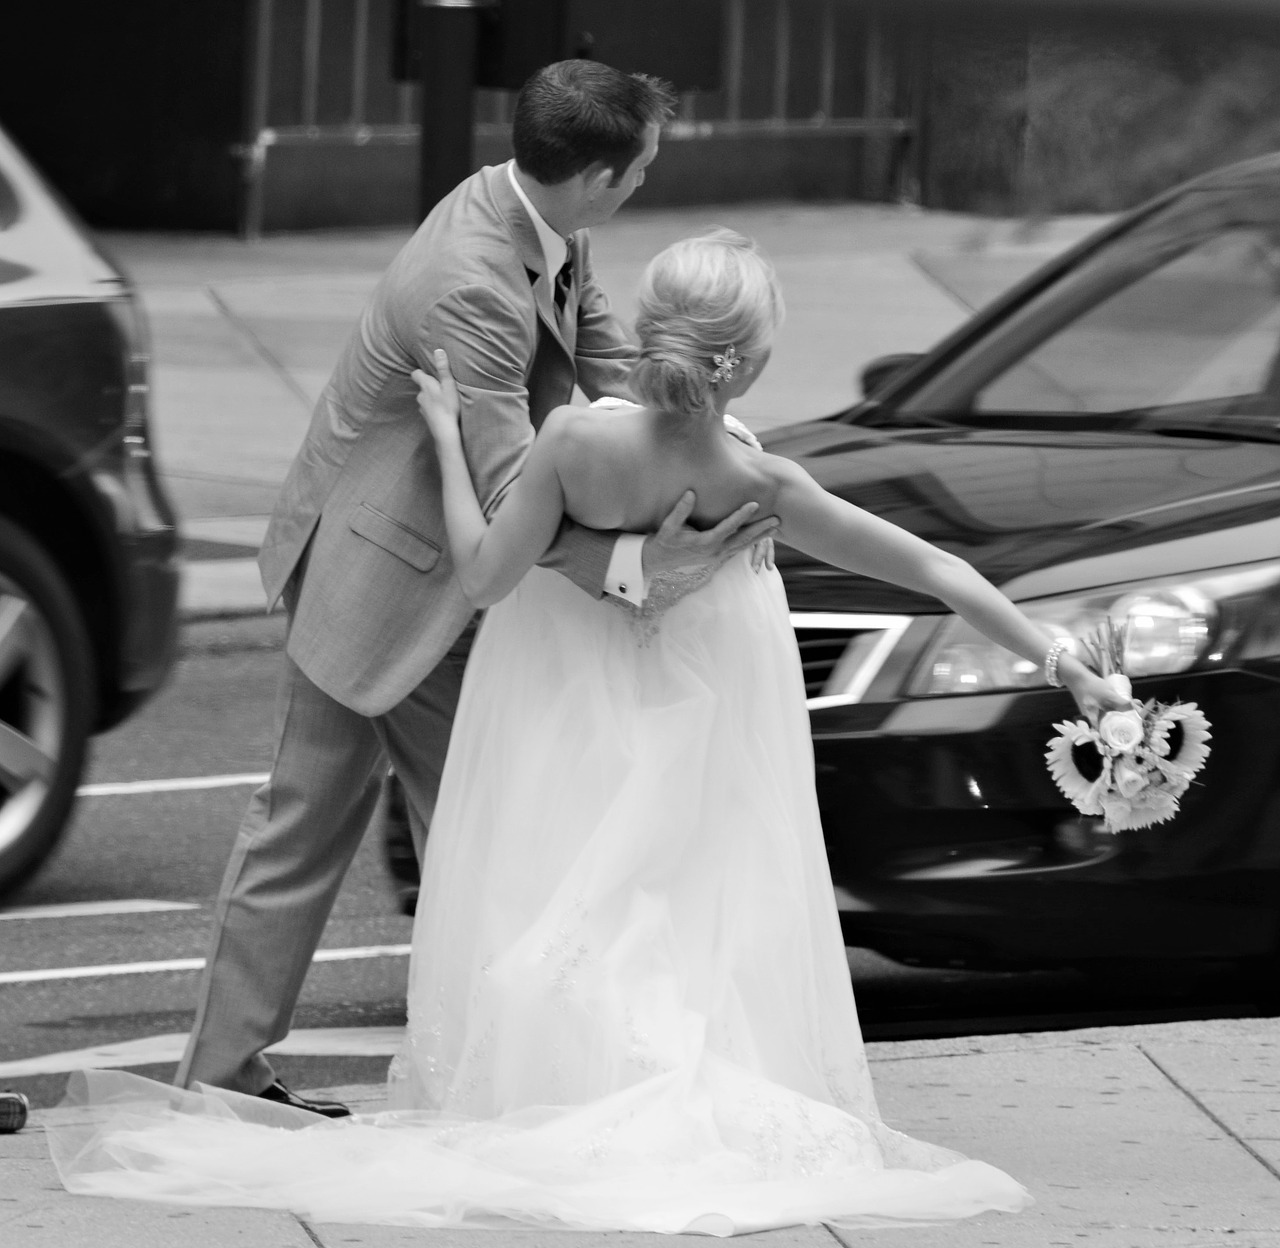 wedding,bride and groom,wedding photo,love,happiness,celebration,bouquet,commitment,white dress,in love,white,union,flowers,i love you,tenderness,couple,black and white,black and white photo,marriage in the city,free pictures, free photos, free images, royalty free, free illustrations, public domain